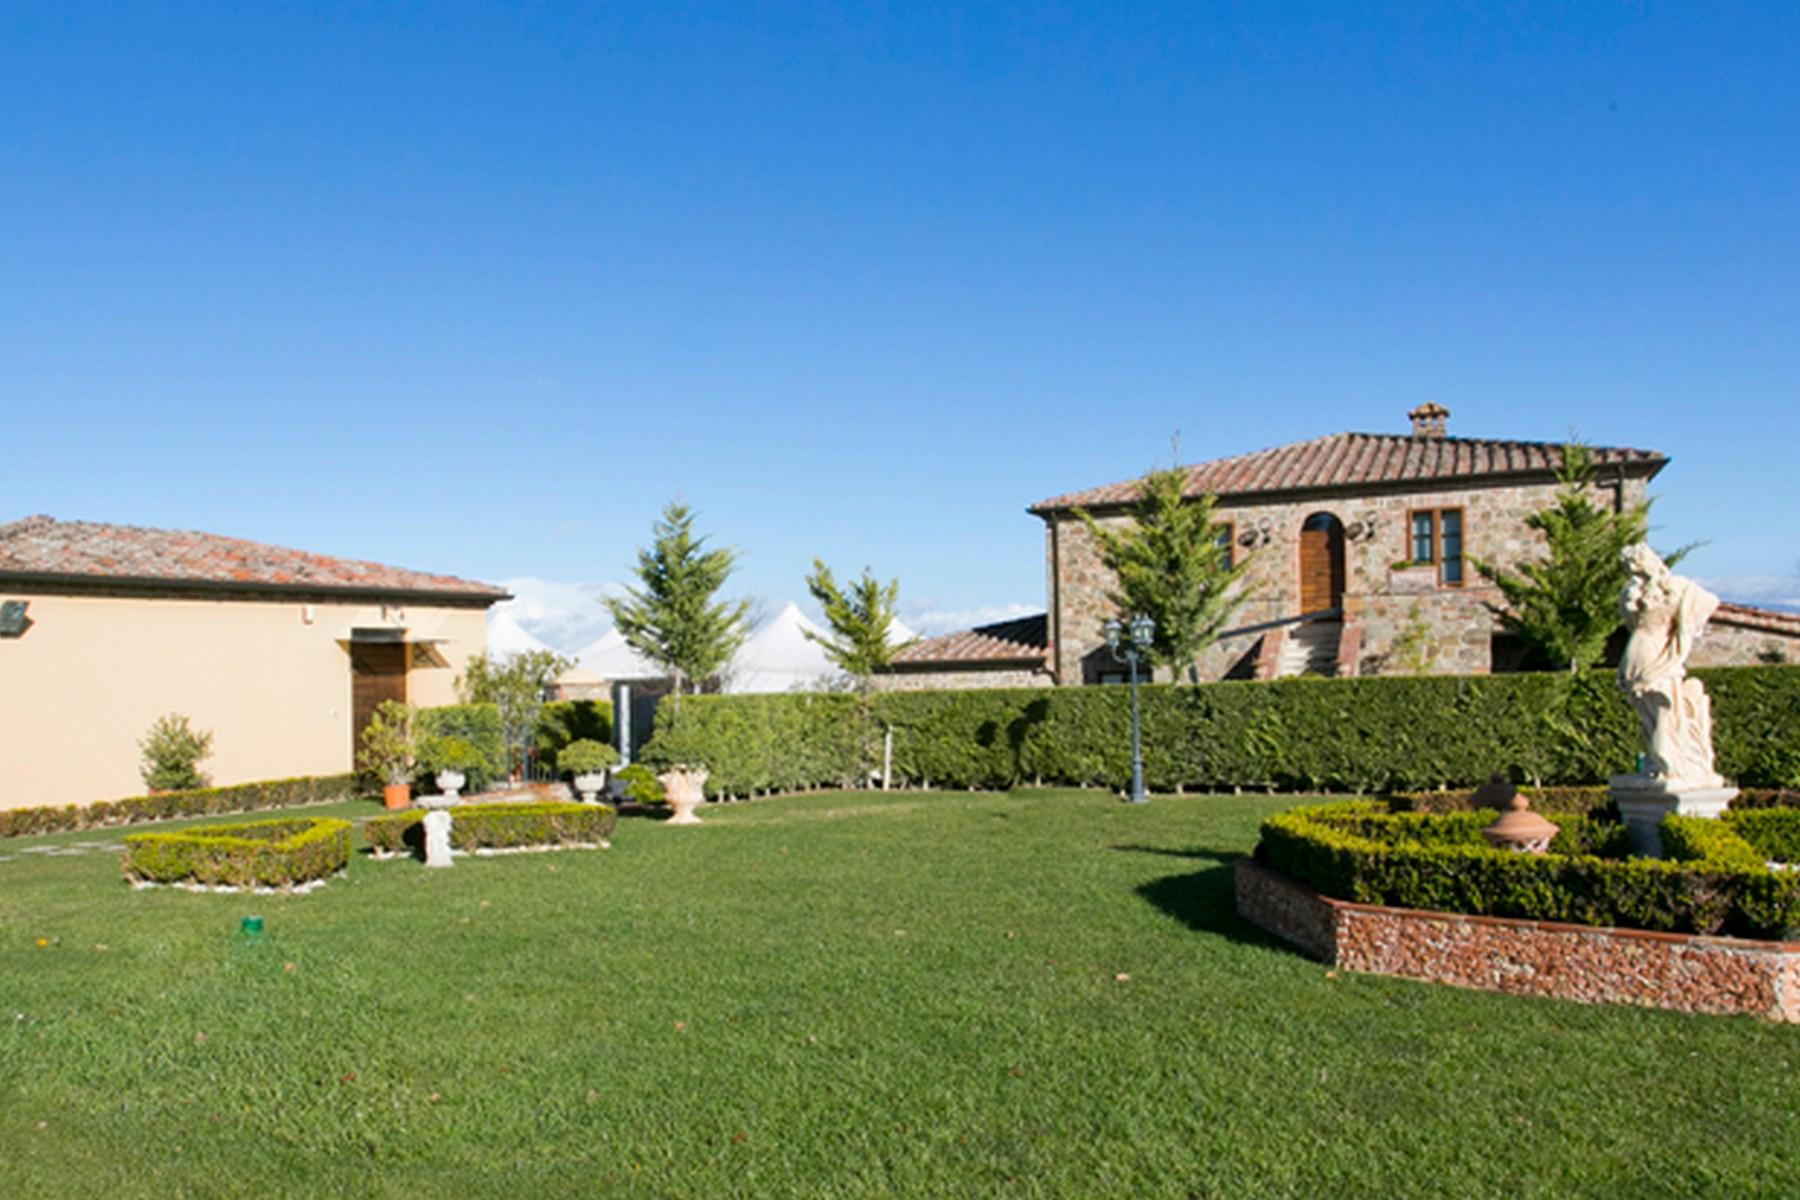 Beautiful Boutique Hotel with Restaurant and SPA in the hills of Torrita di Siena - 25